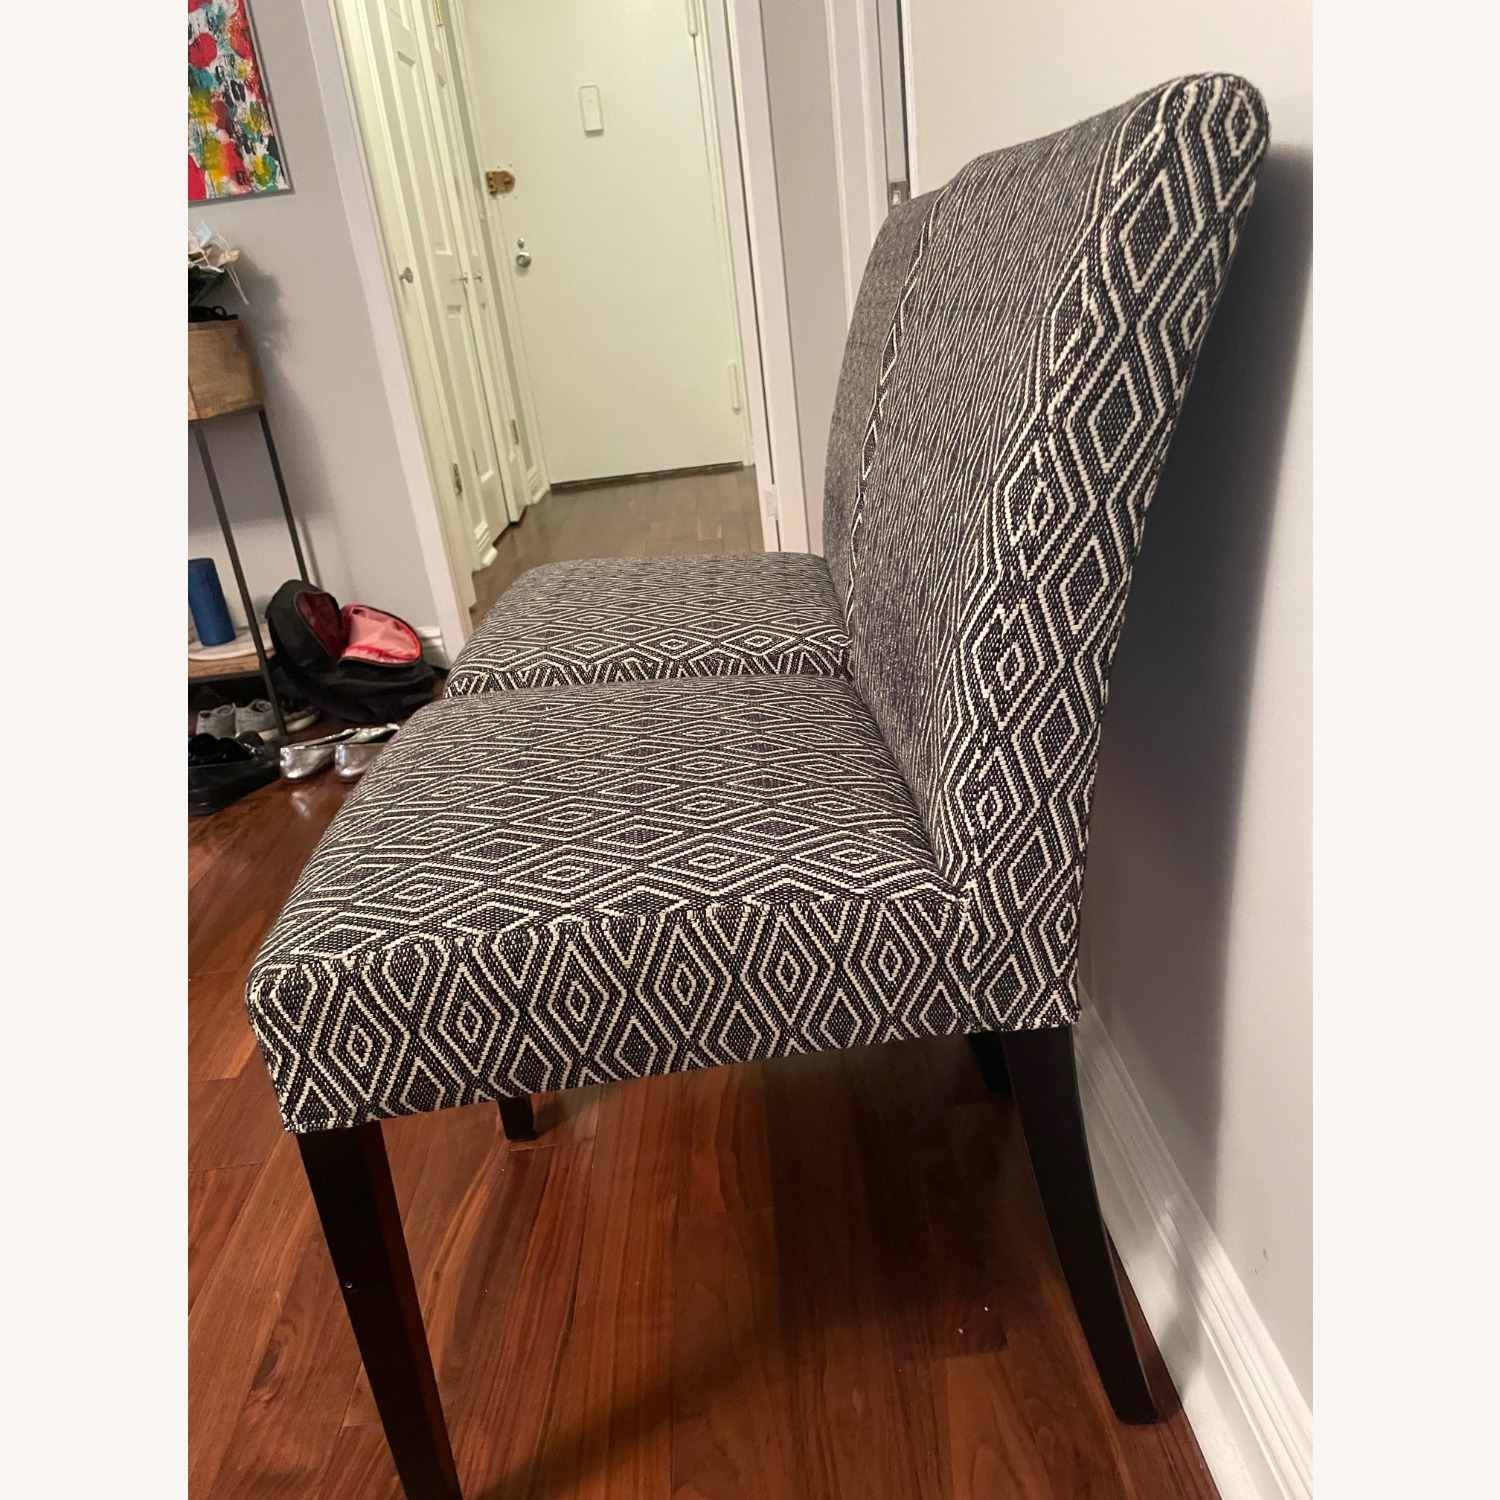 Crate & Barrel Upholstered Dining Chair Set - image-2